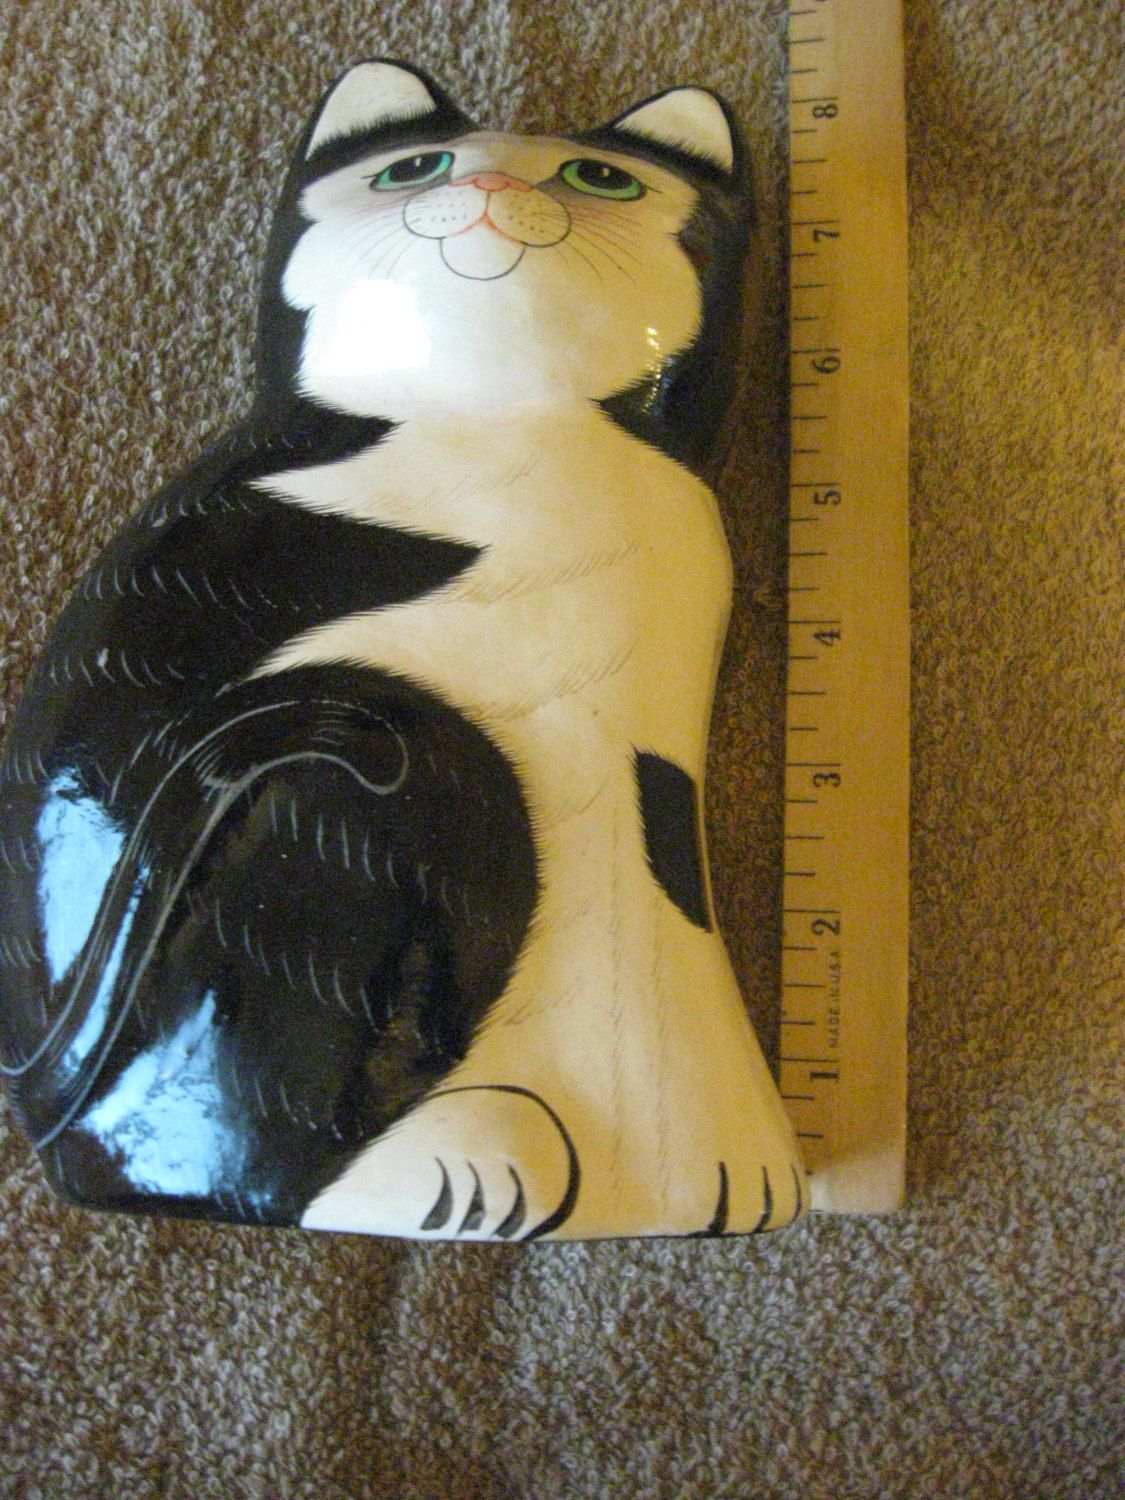 Vintage Cat Figurine Carol Sax Handpainted 1993 CL10-29 от DyDa  Vintage Collectible   Cat Figurine   Carol Sax Handpainted 1993  Made in India  7 3/4 inches tall